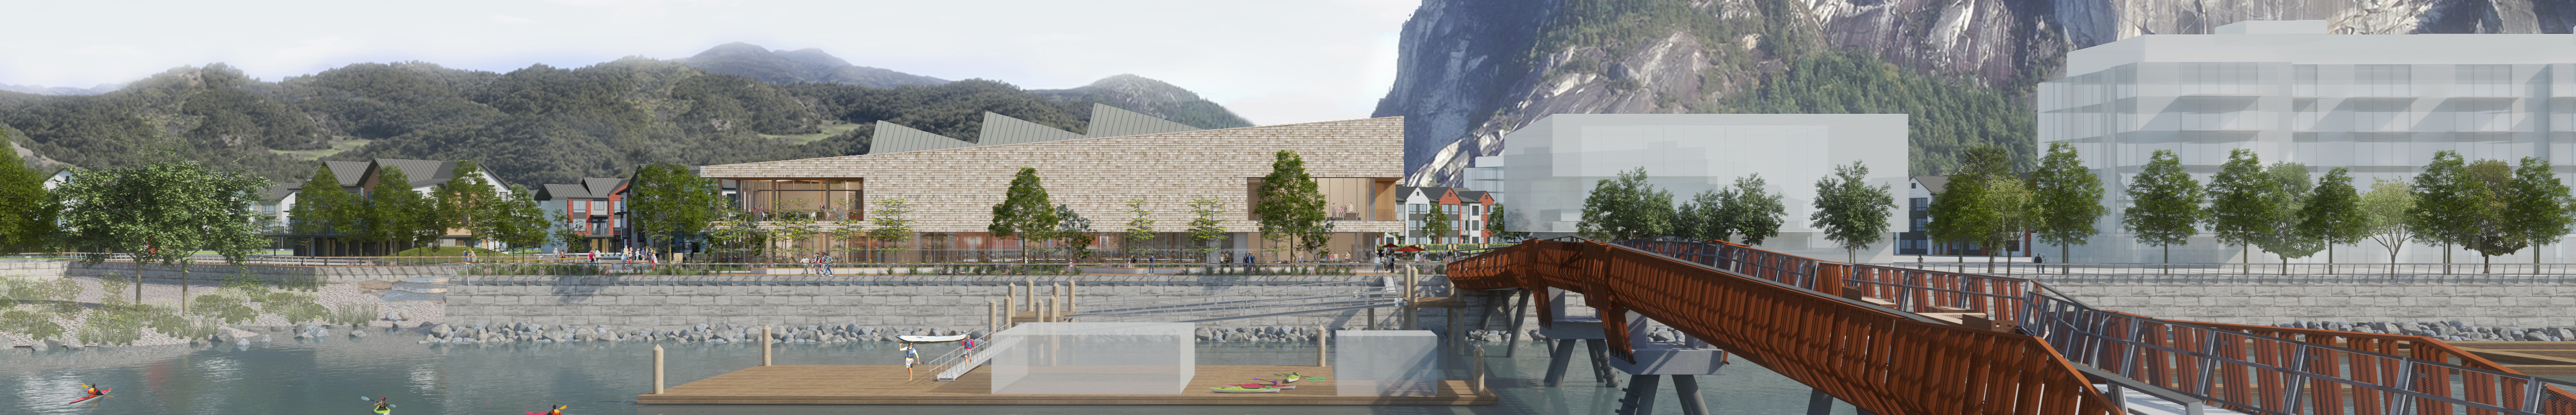 office of mcfarlane biggar architects + designers, Squamish, Sea and Sky Community + Fitness Centre